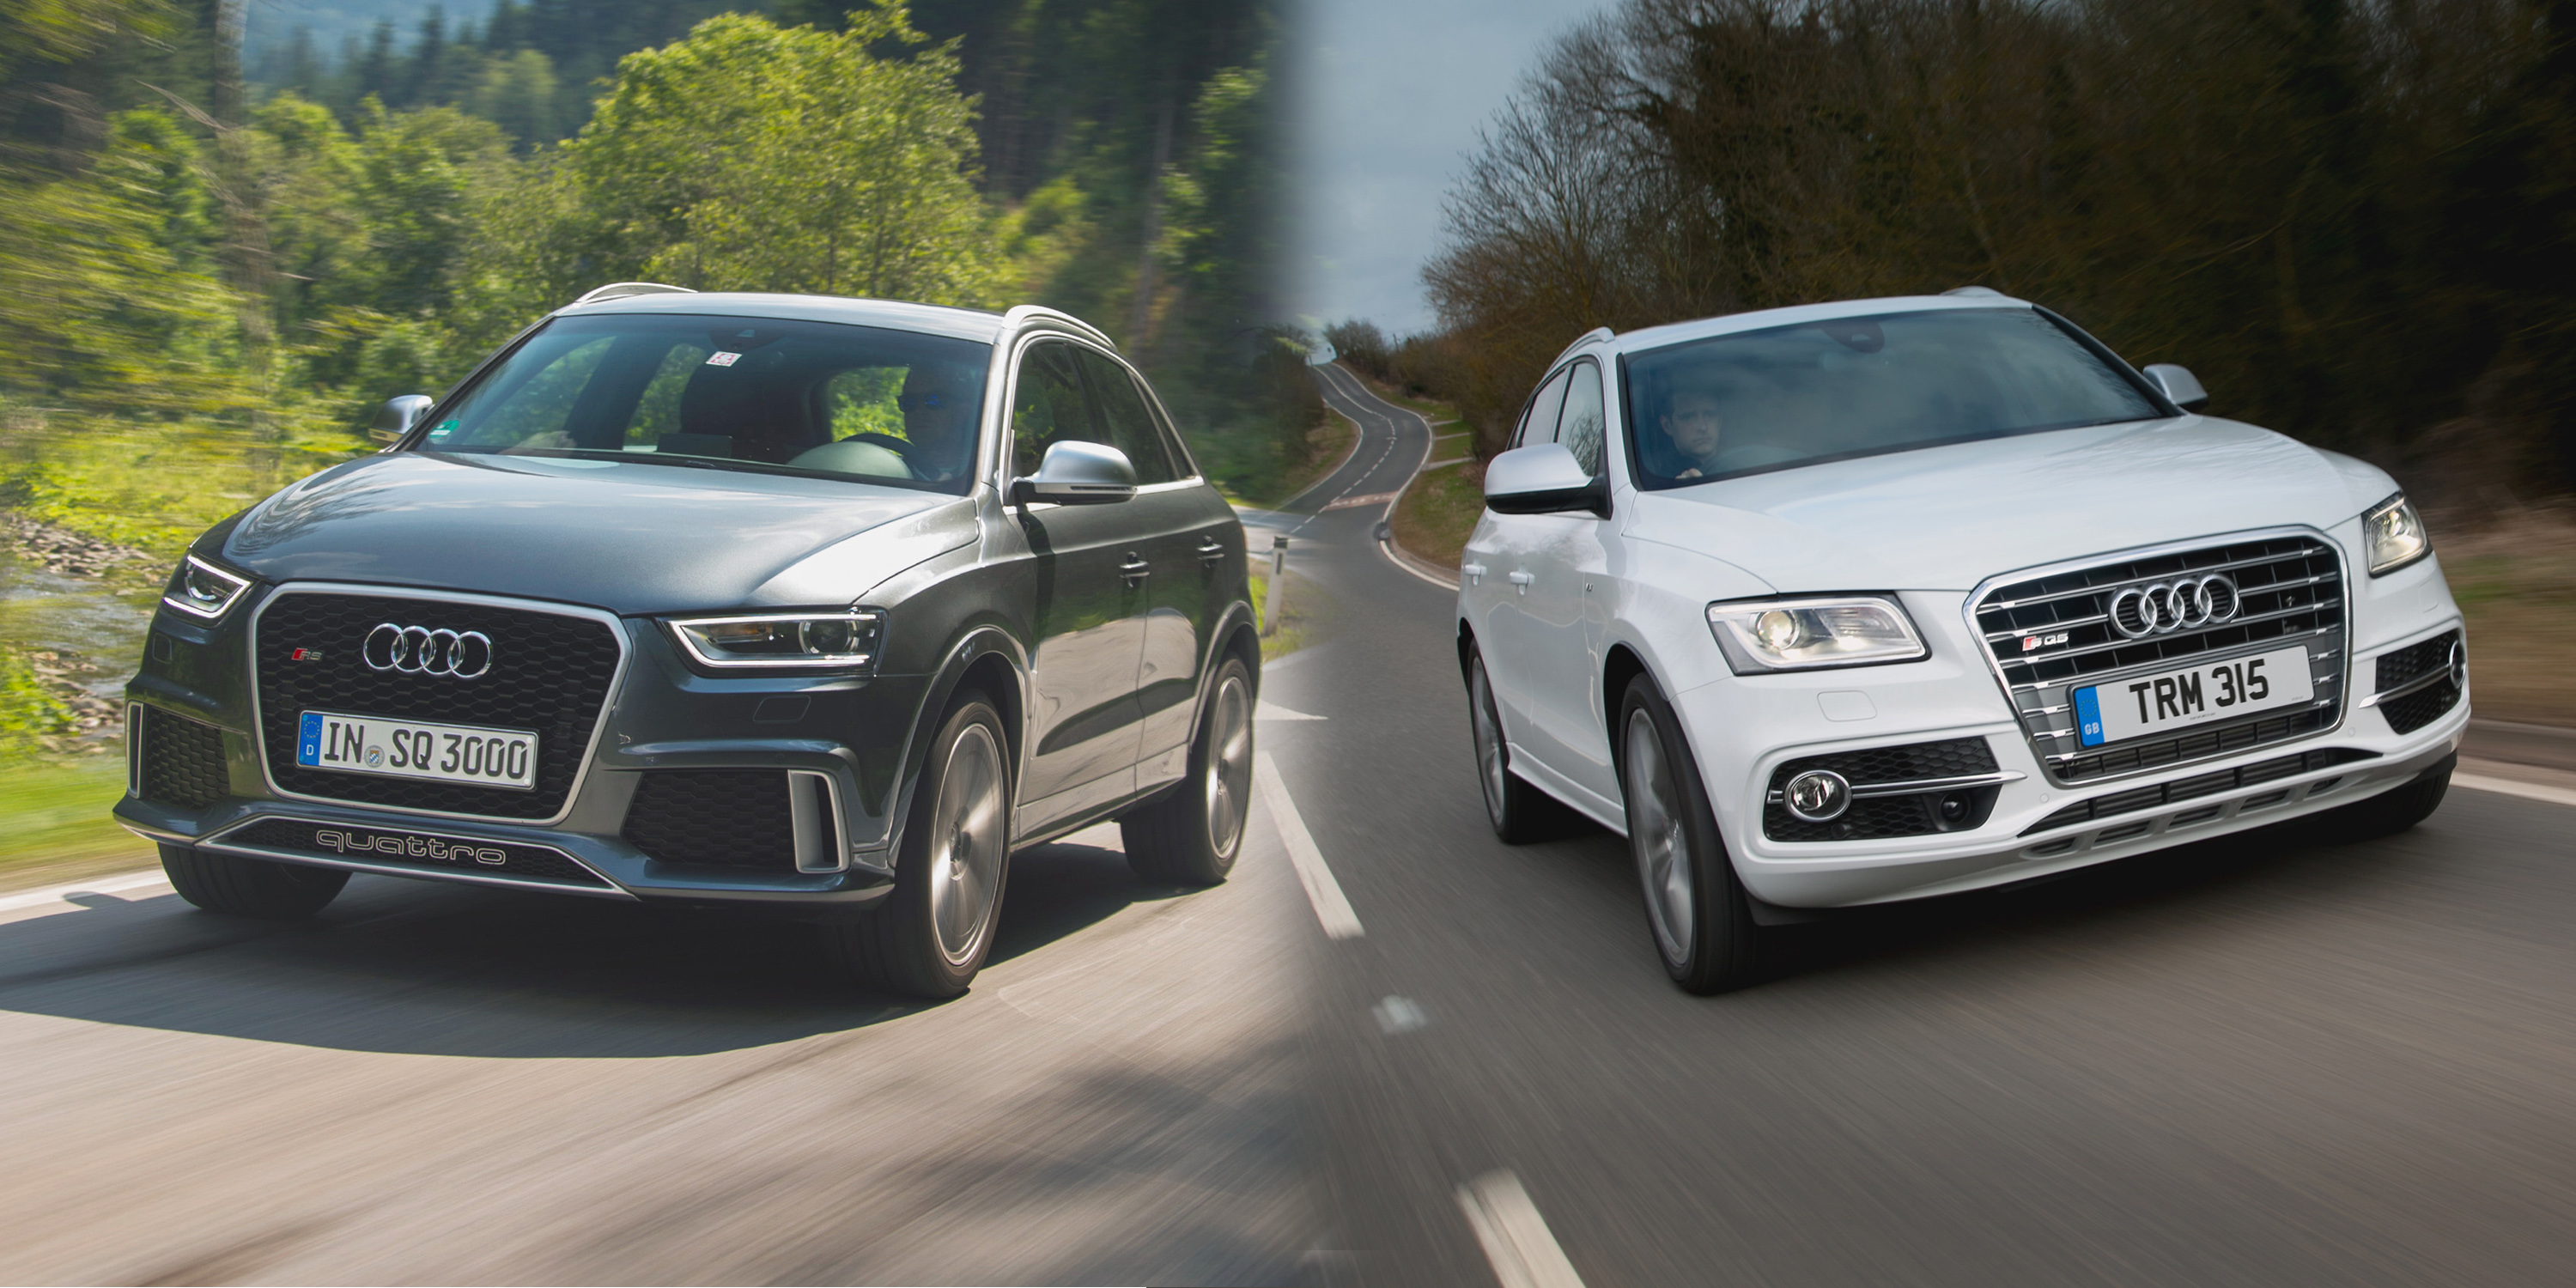 Audi Q3 Vs Audi Q5 Side By Side Uk Comparison Carwow